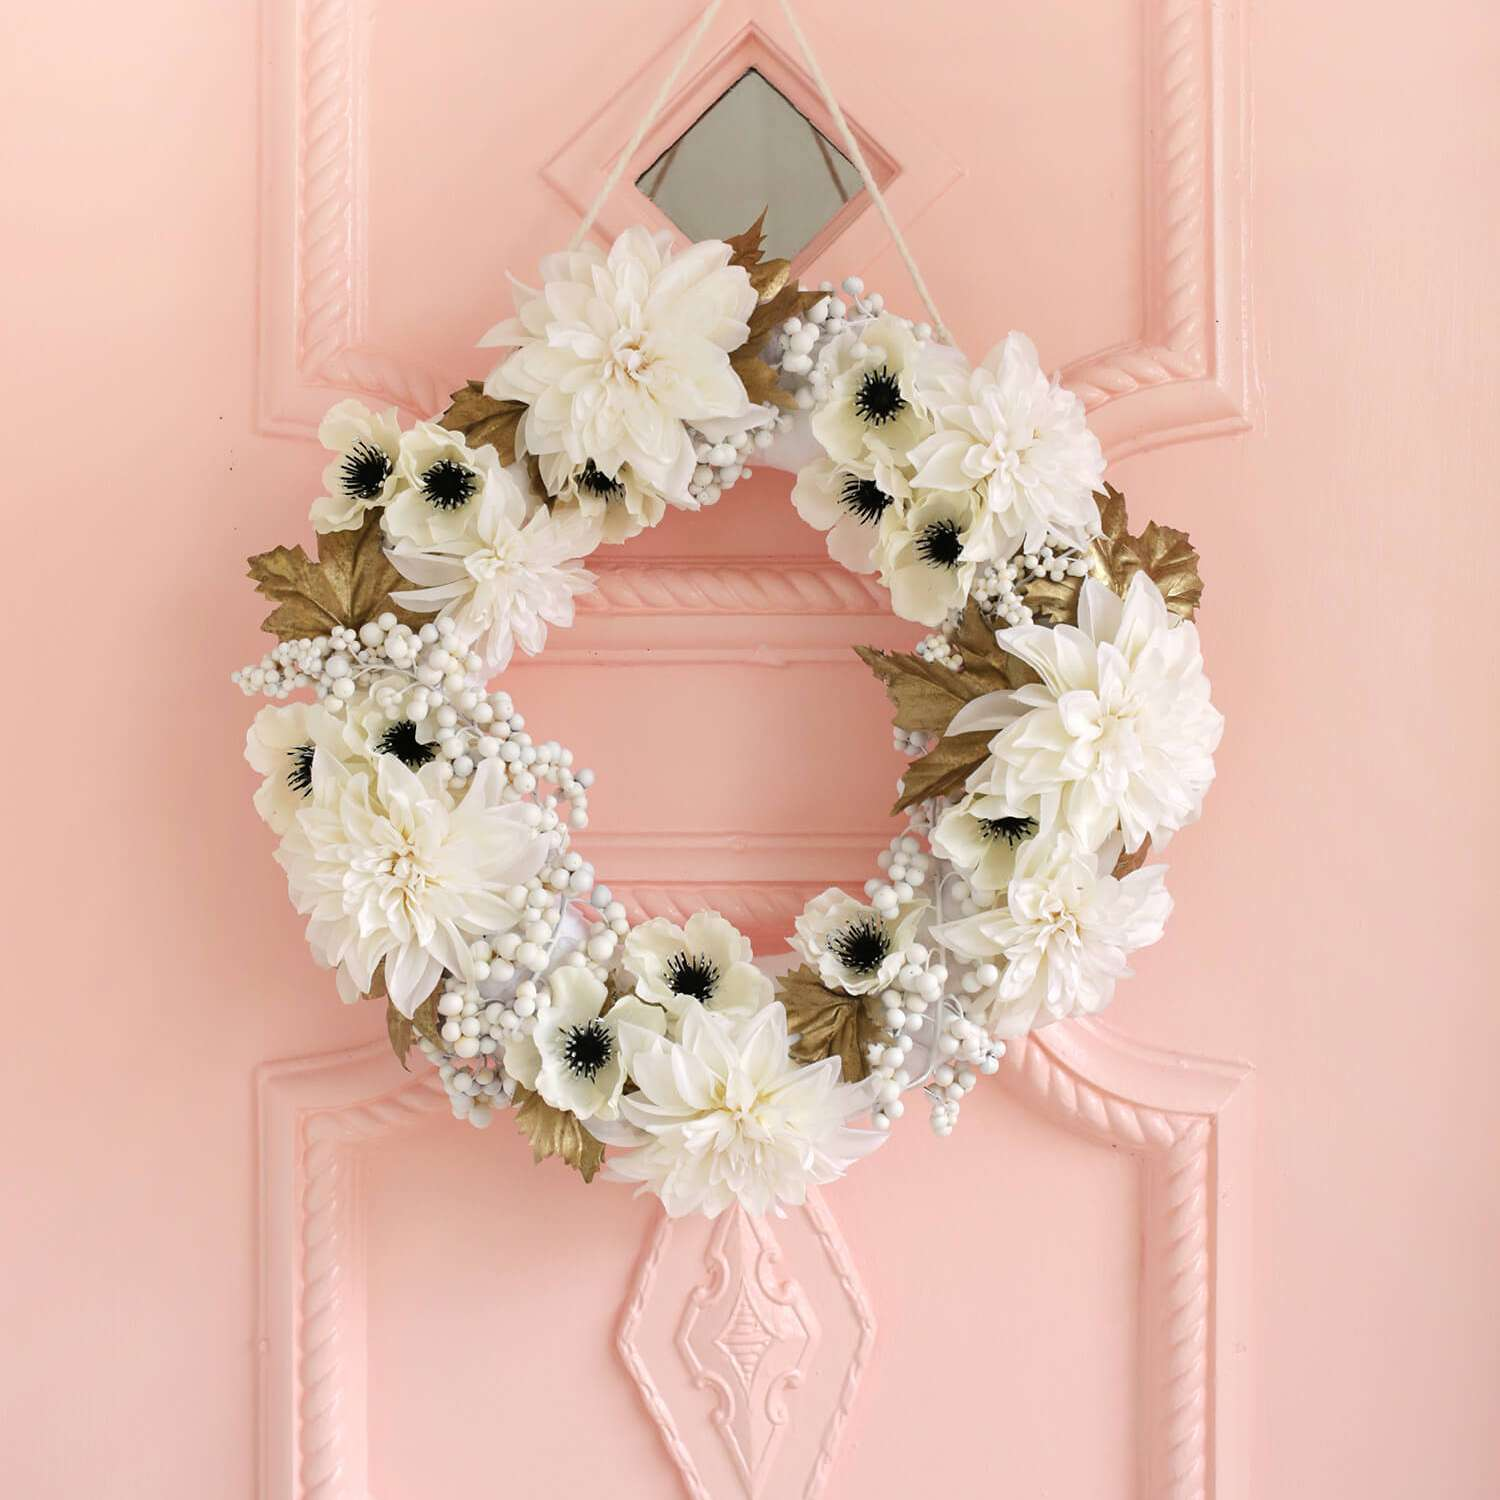 White and Gold Floral Wreath